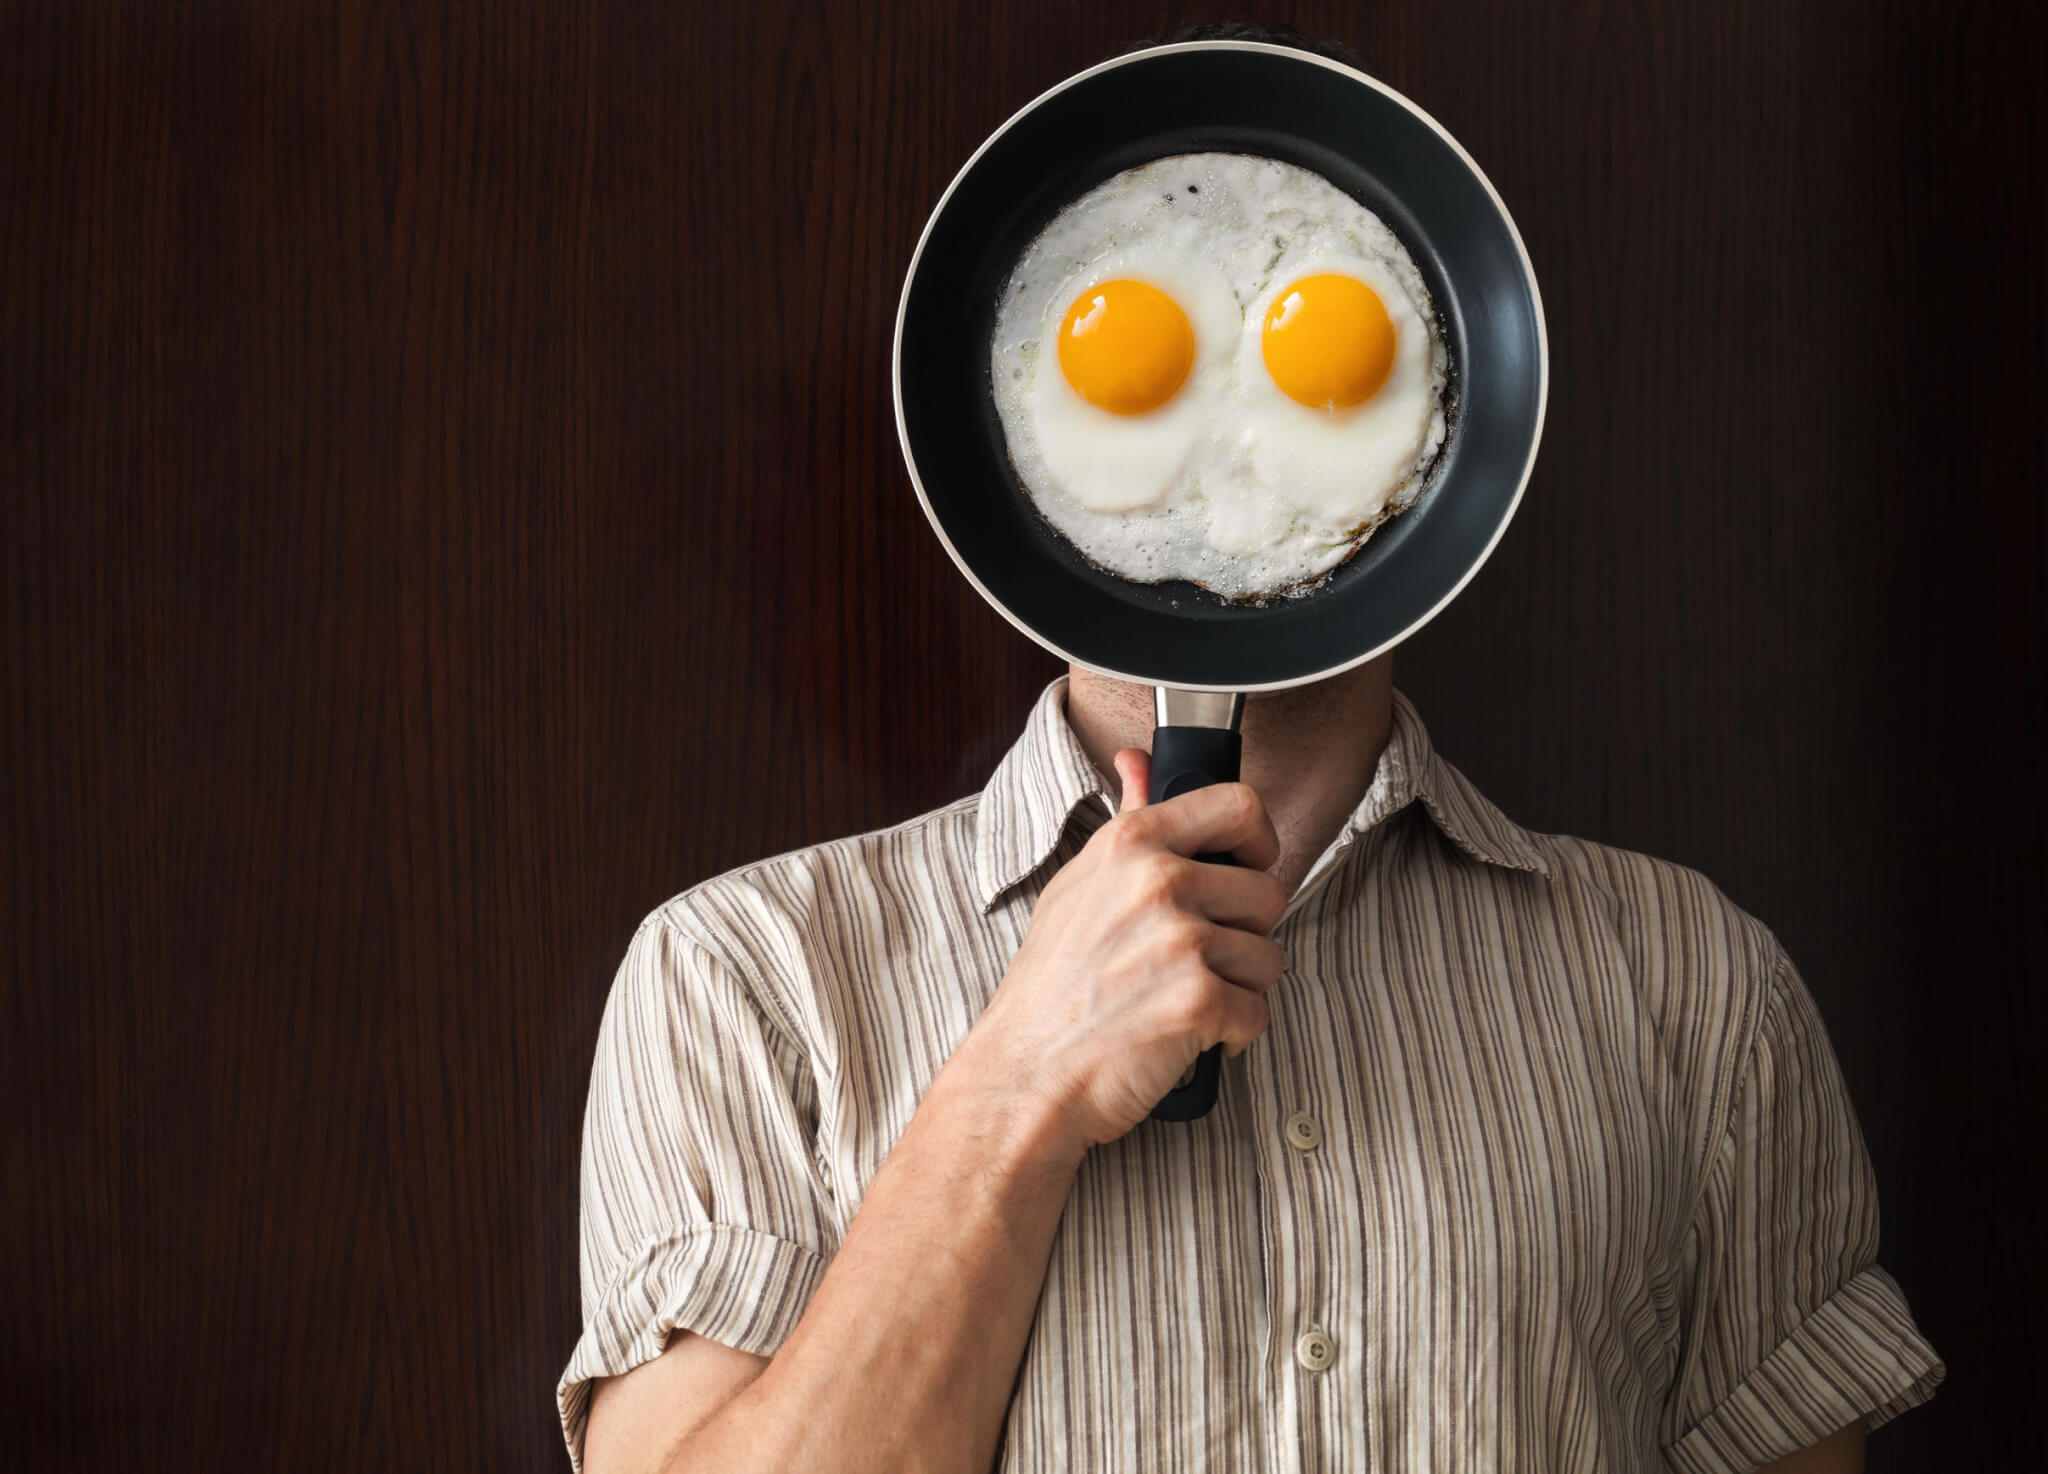 Cholesterol in Eggs – Good or Bad?